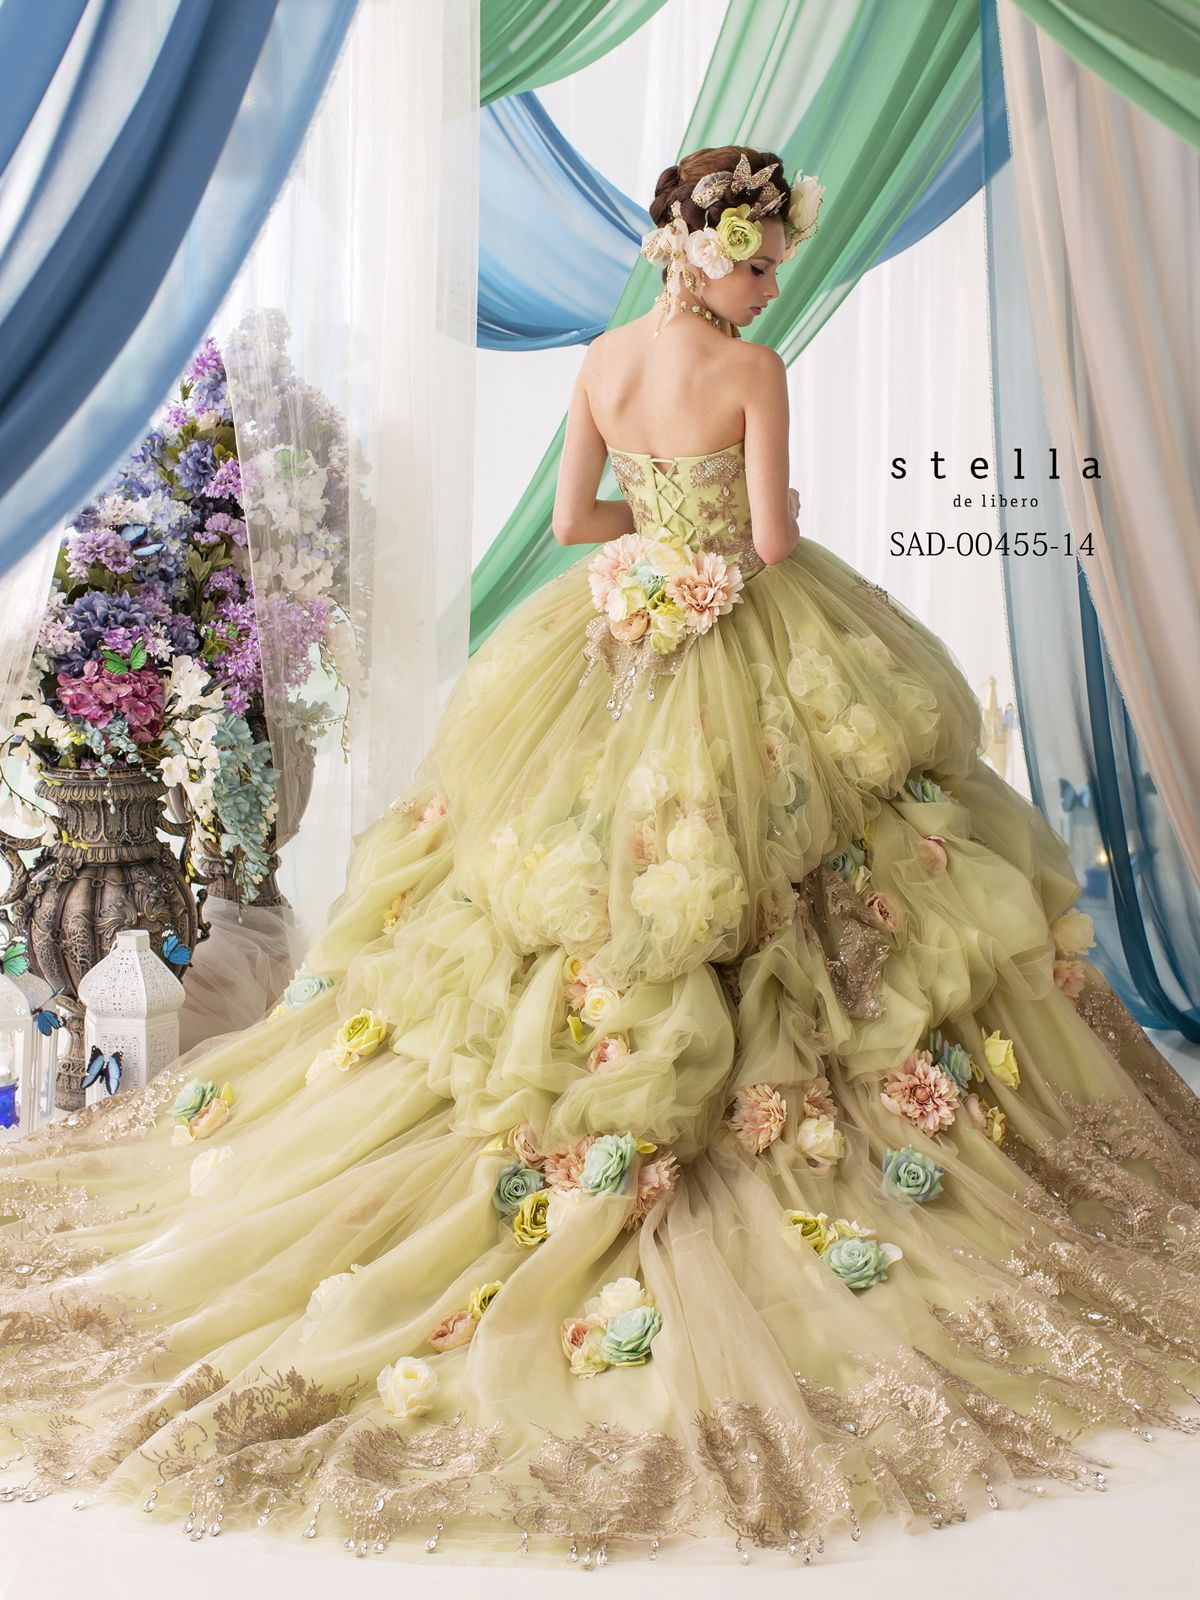 Absolutely Stunning Ballgown dball~dress ballgown